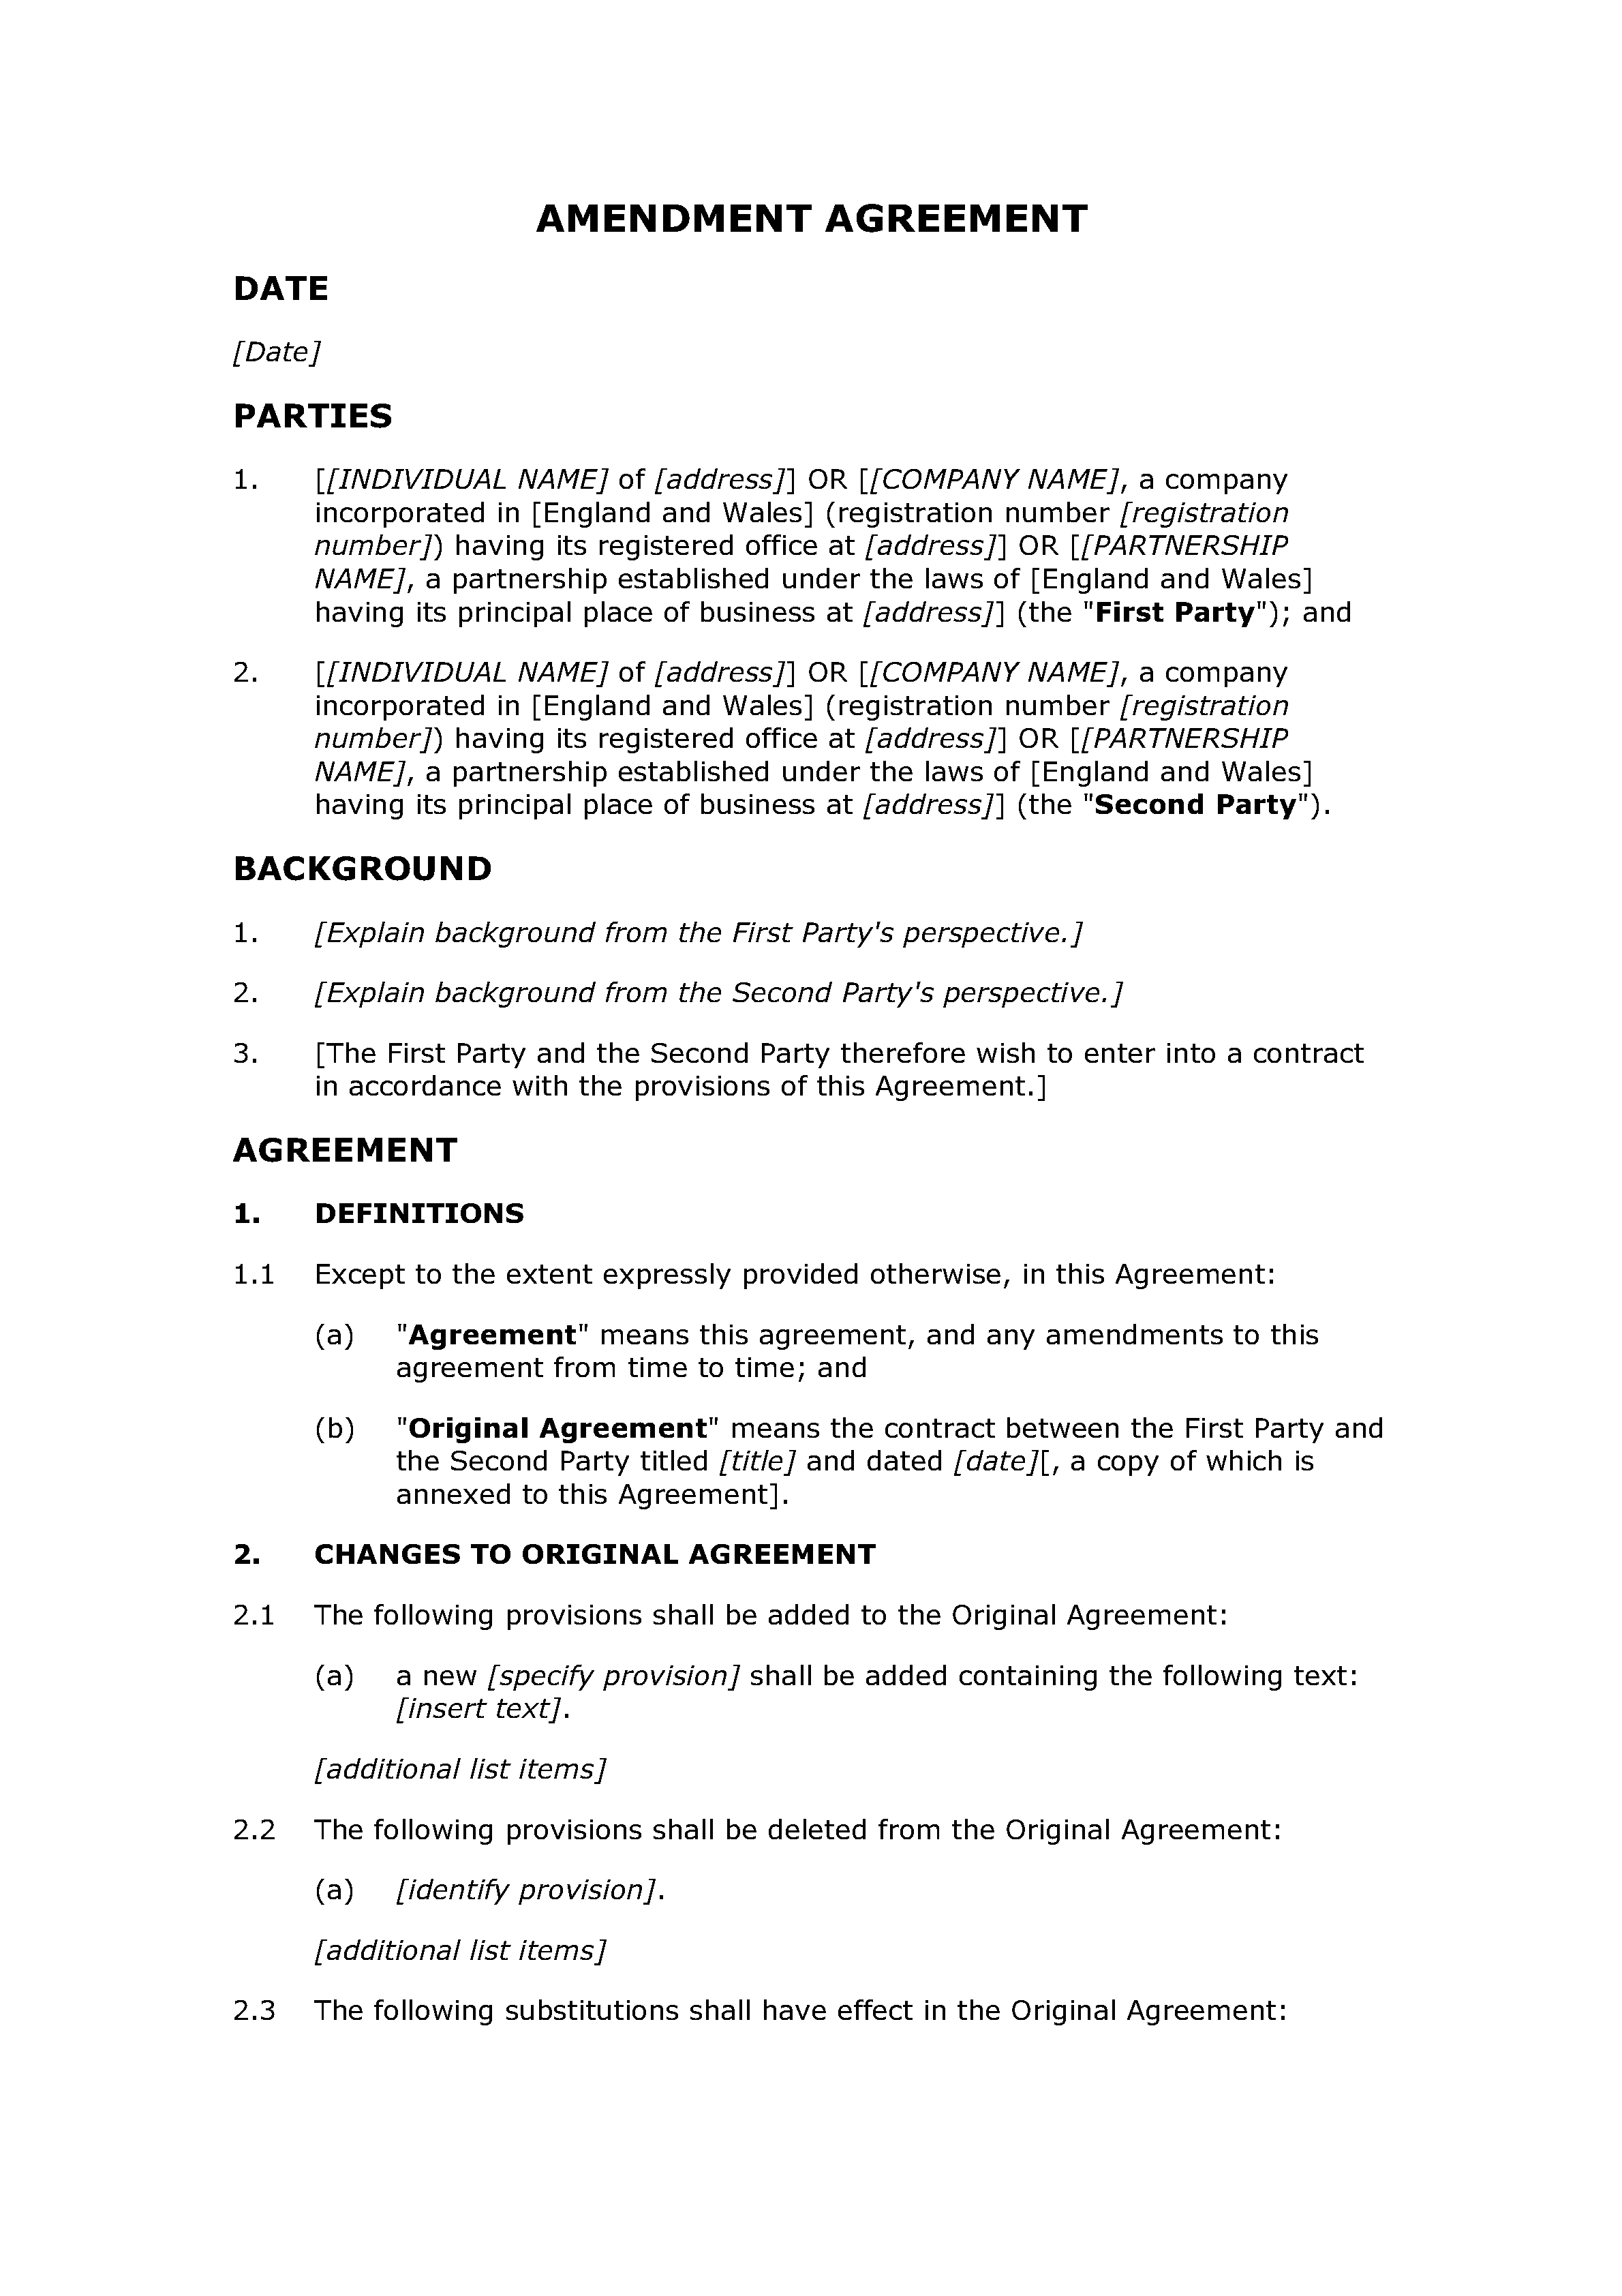 Amendment agreement document preview